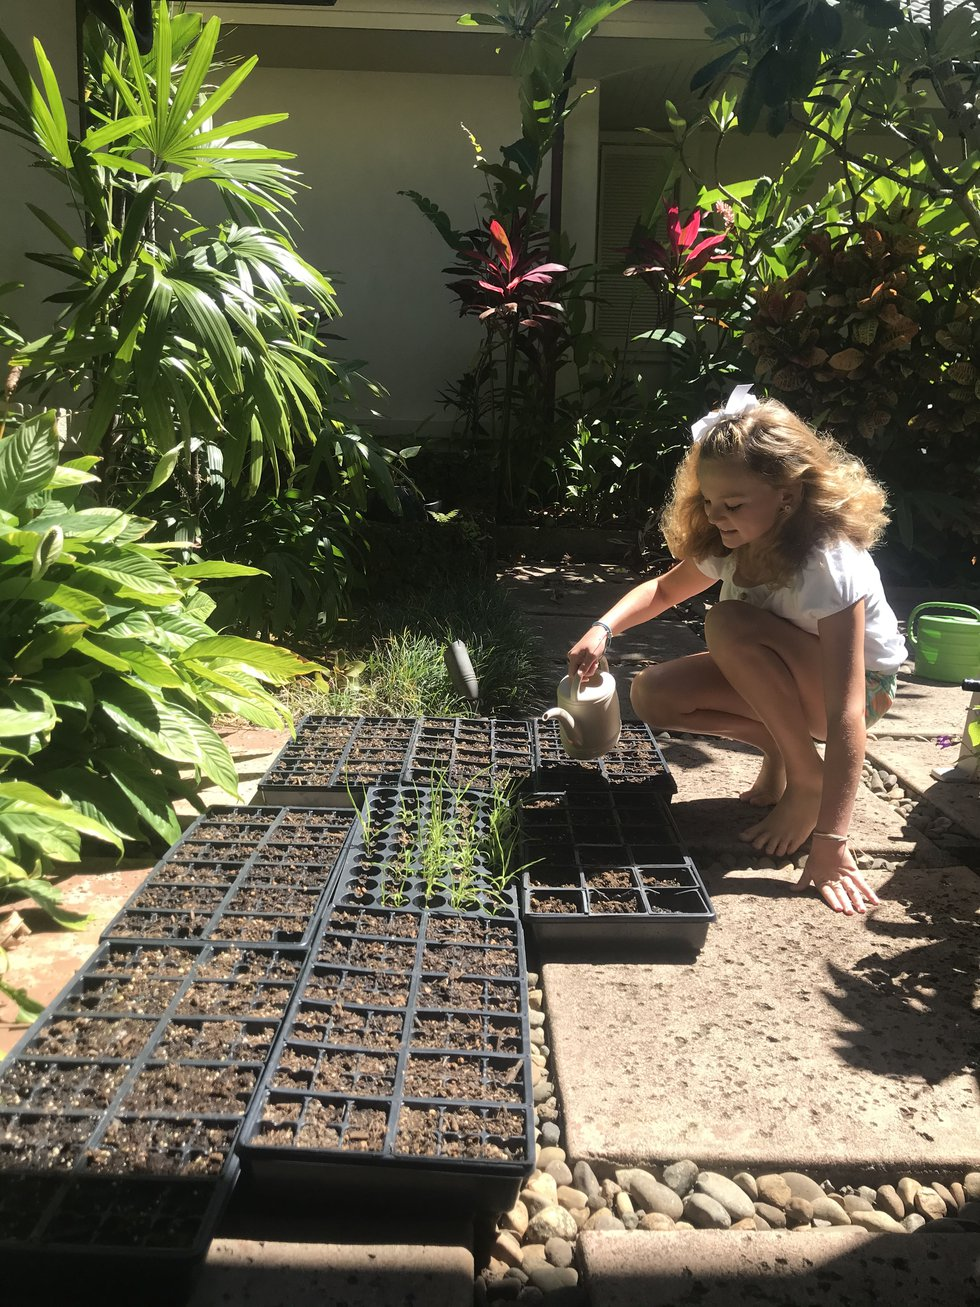 Abby Rogers is a volunteer with the Coral Reef Alliance (CORAL).